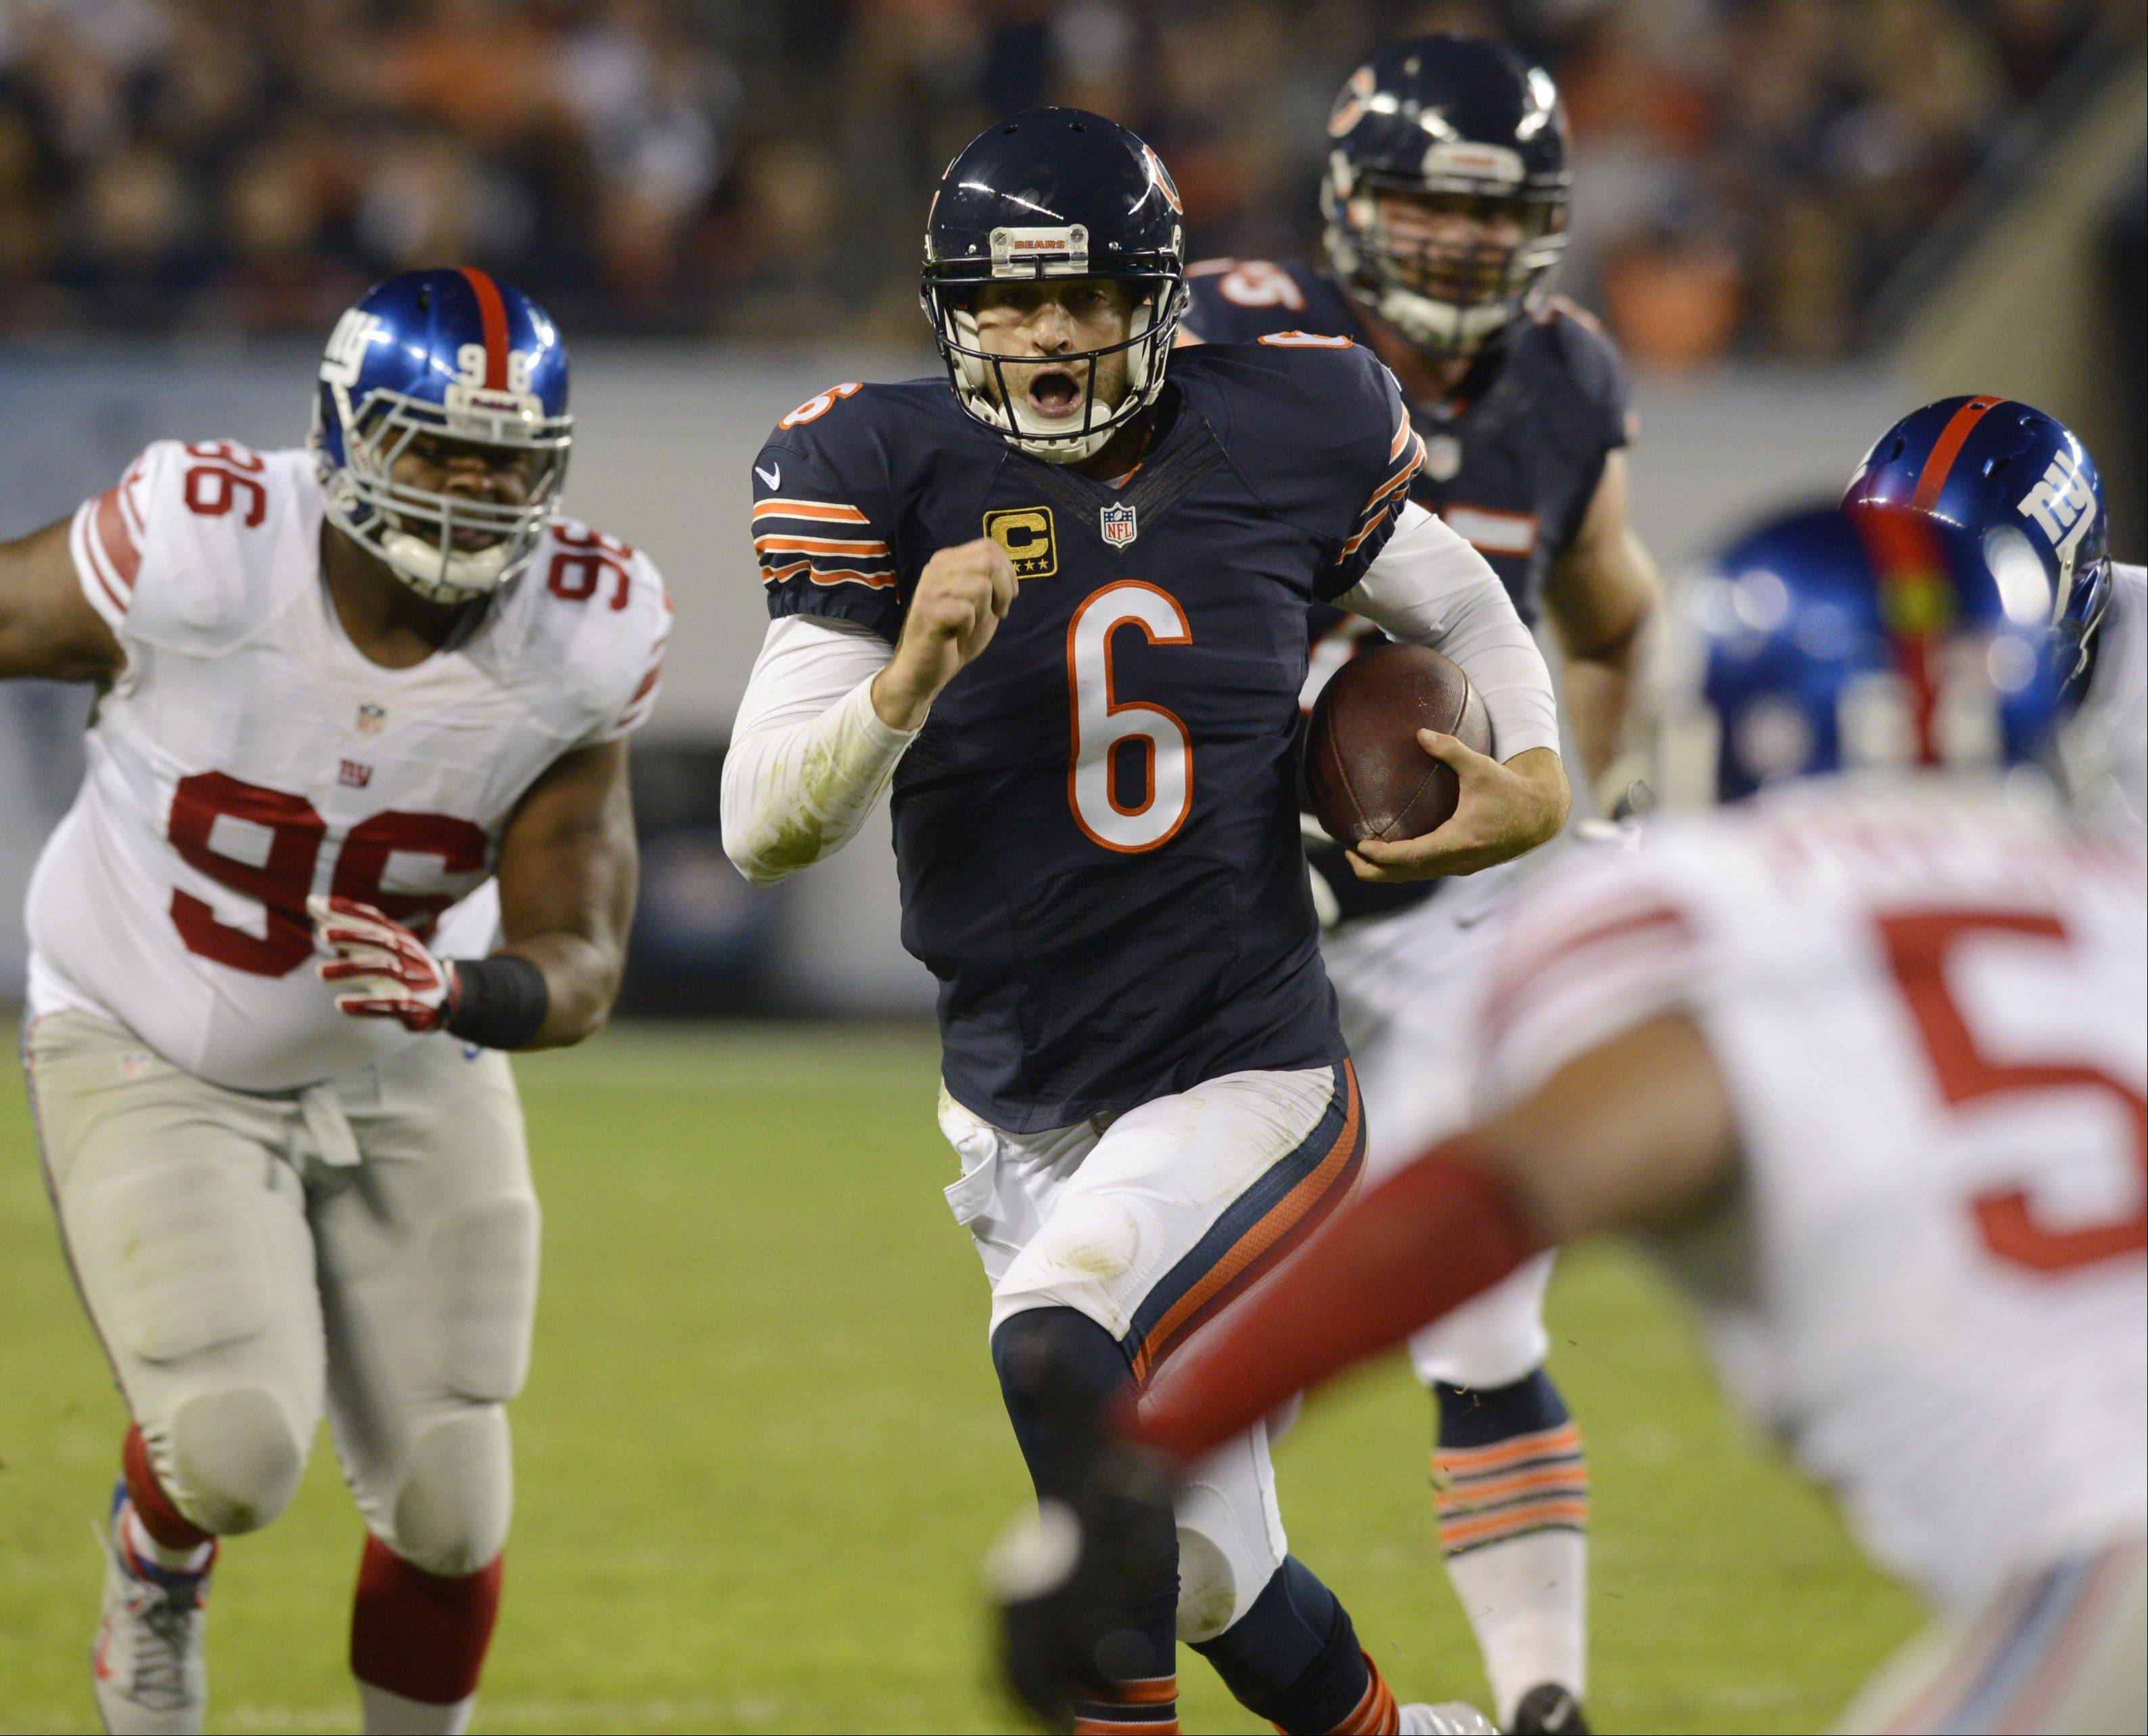 Cutler says offense 'not where we want to be'